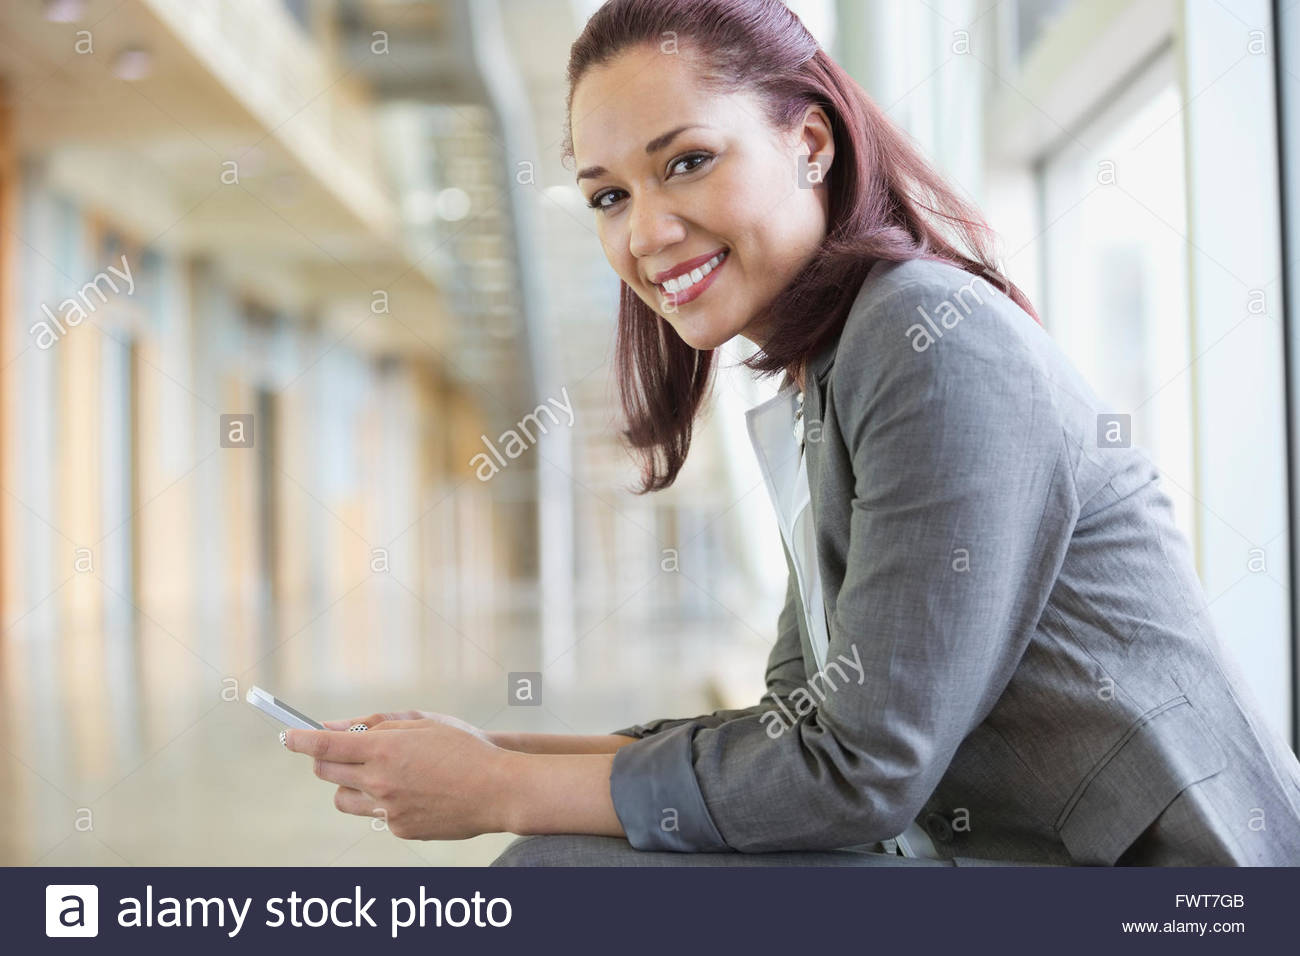 Young businesswoman holding mobile phone in hallway - Stock Image